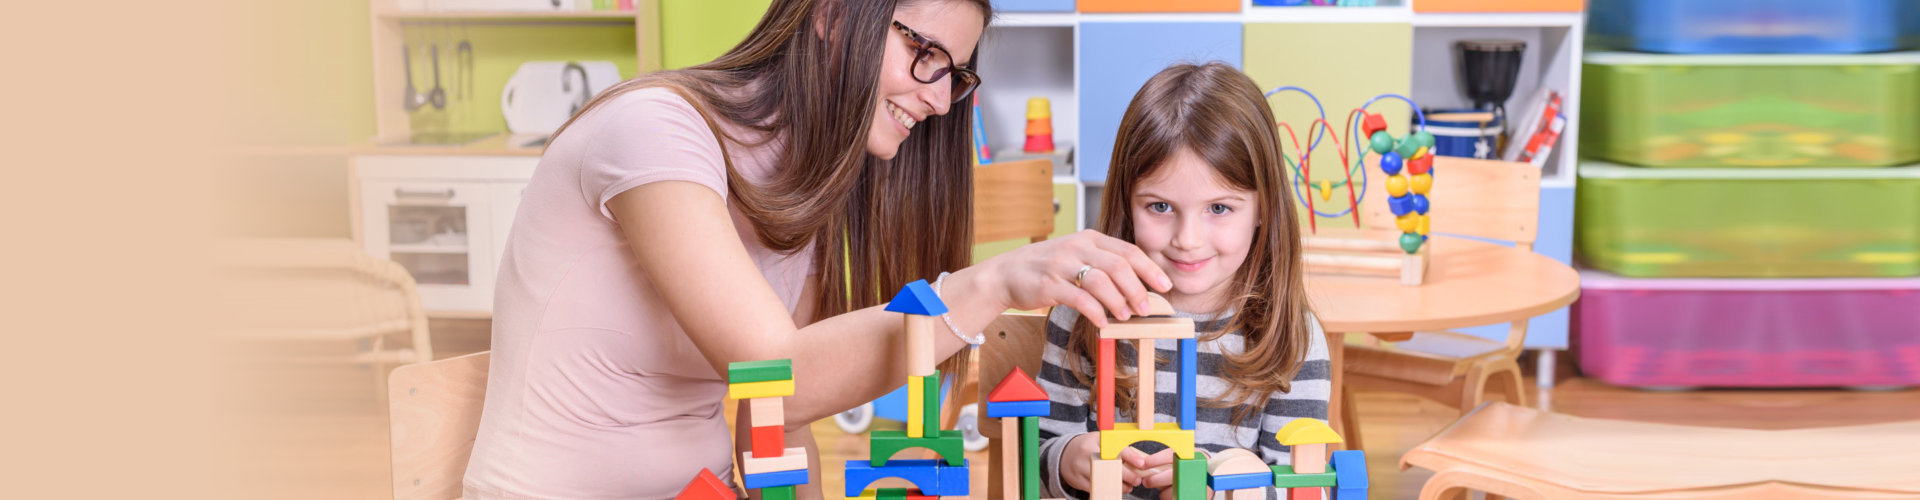 teacher and student playing with blocks